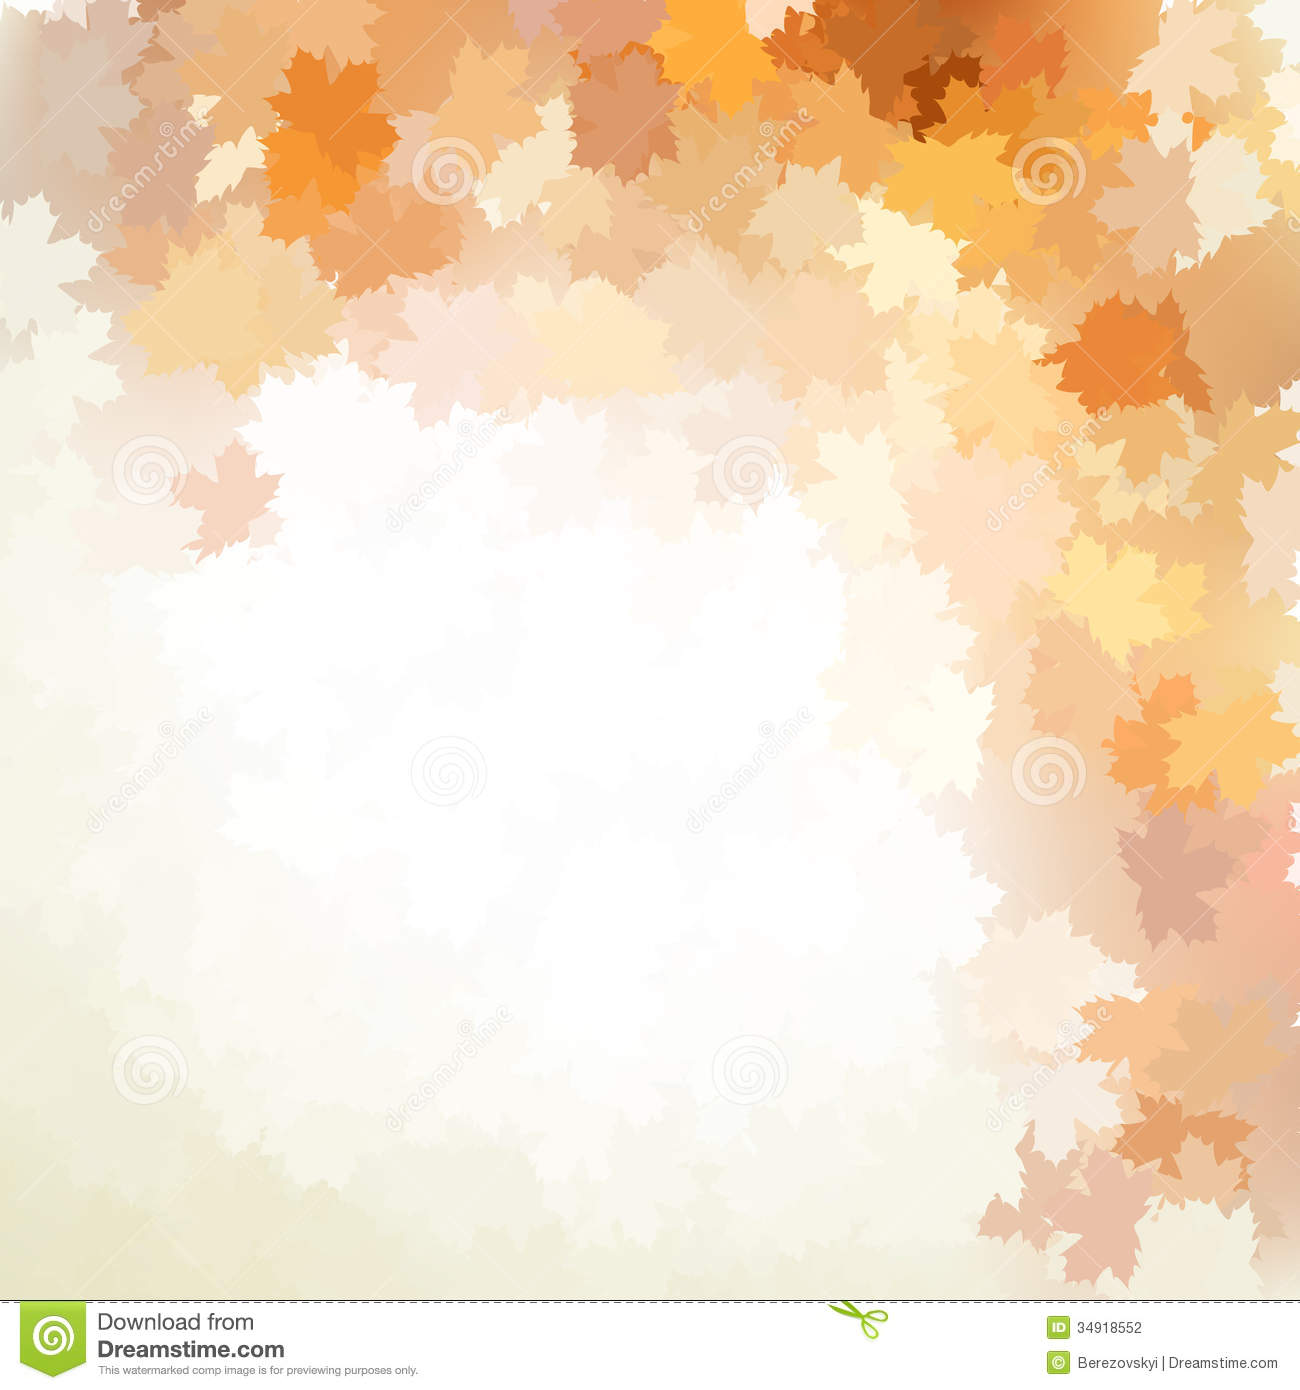 Falling Leaves Wallpaper Free Download Autumn Design Background With Colorful Eps 10 Stock